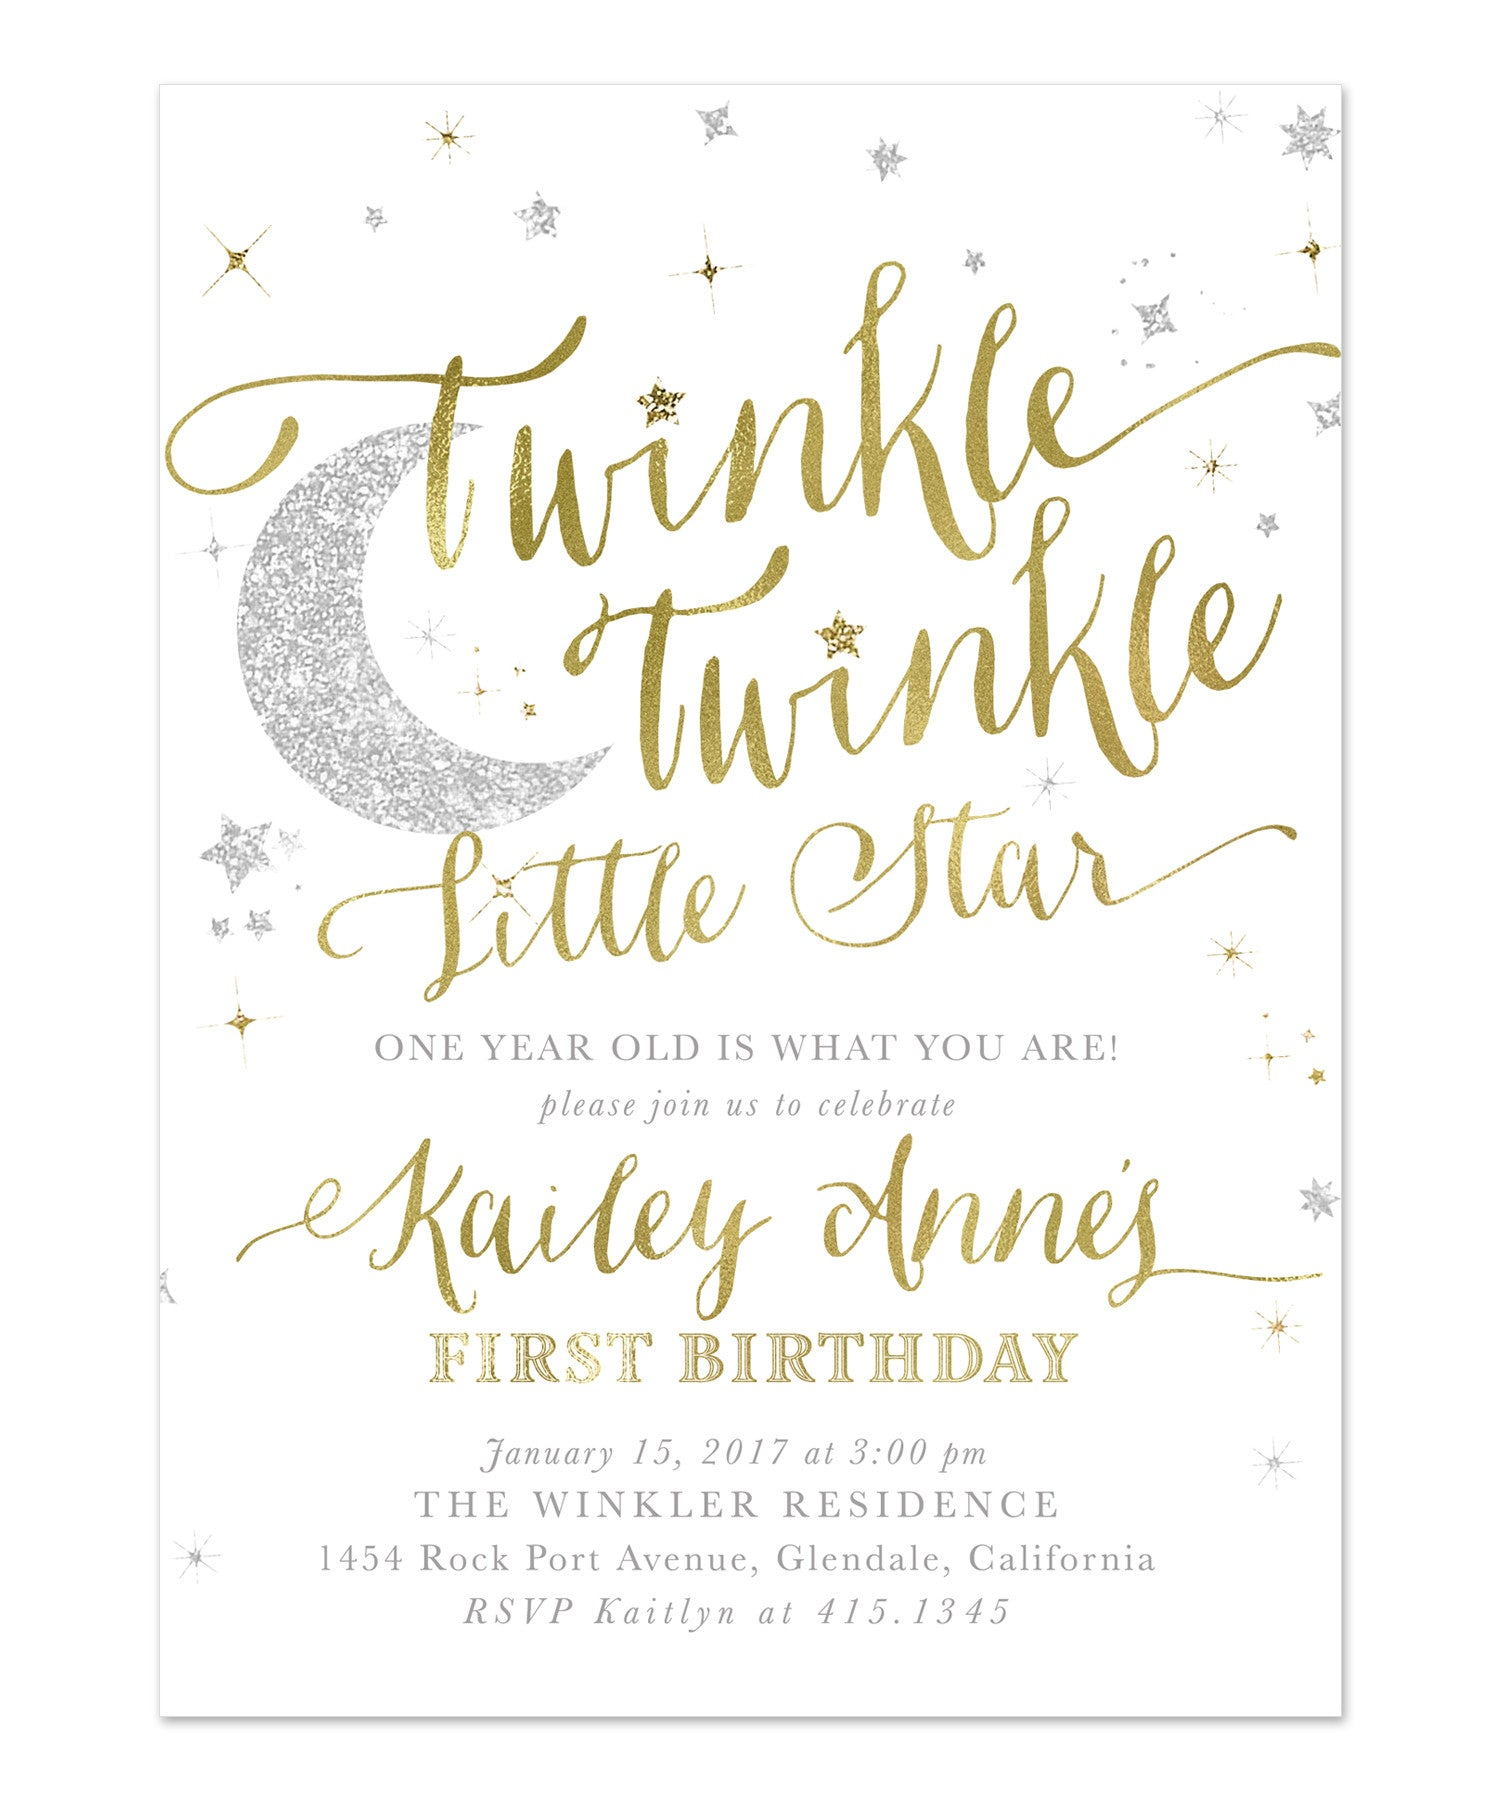 Twinkle Twinkle Little Star Boy or Girl Birthday Invitation White